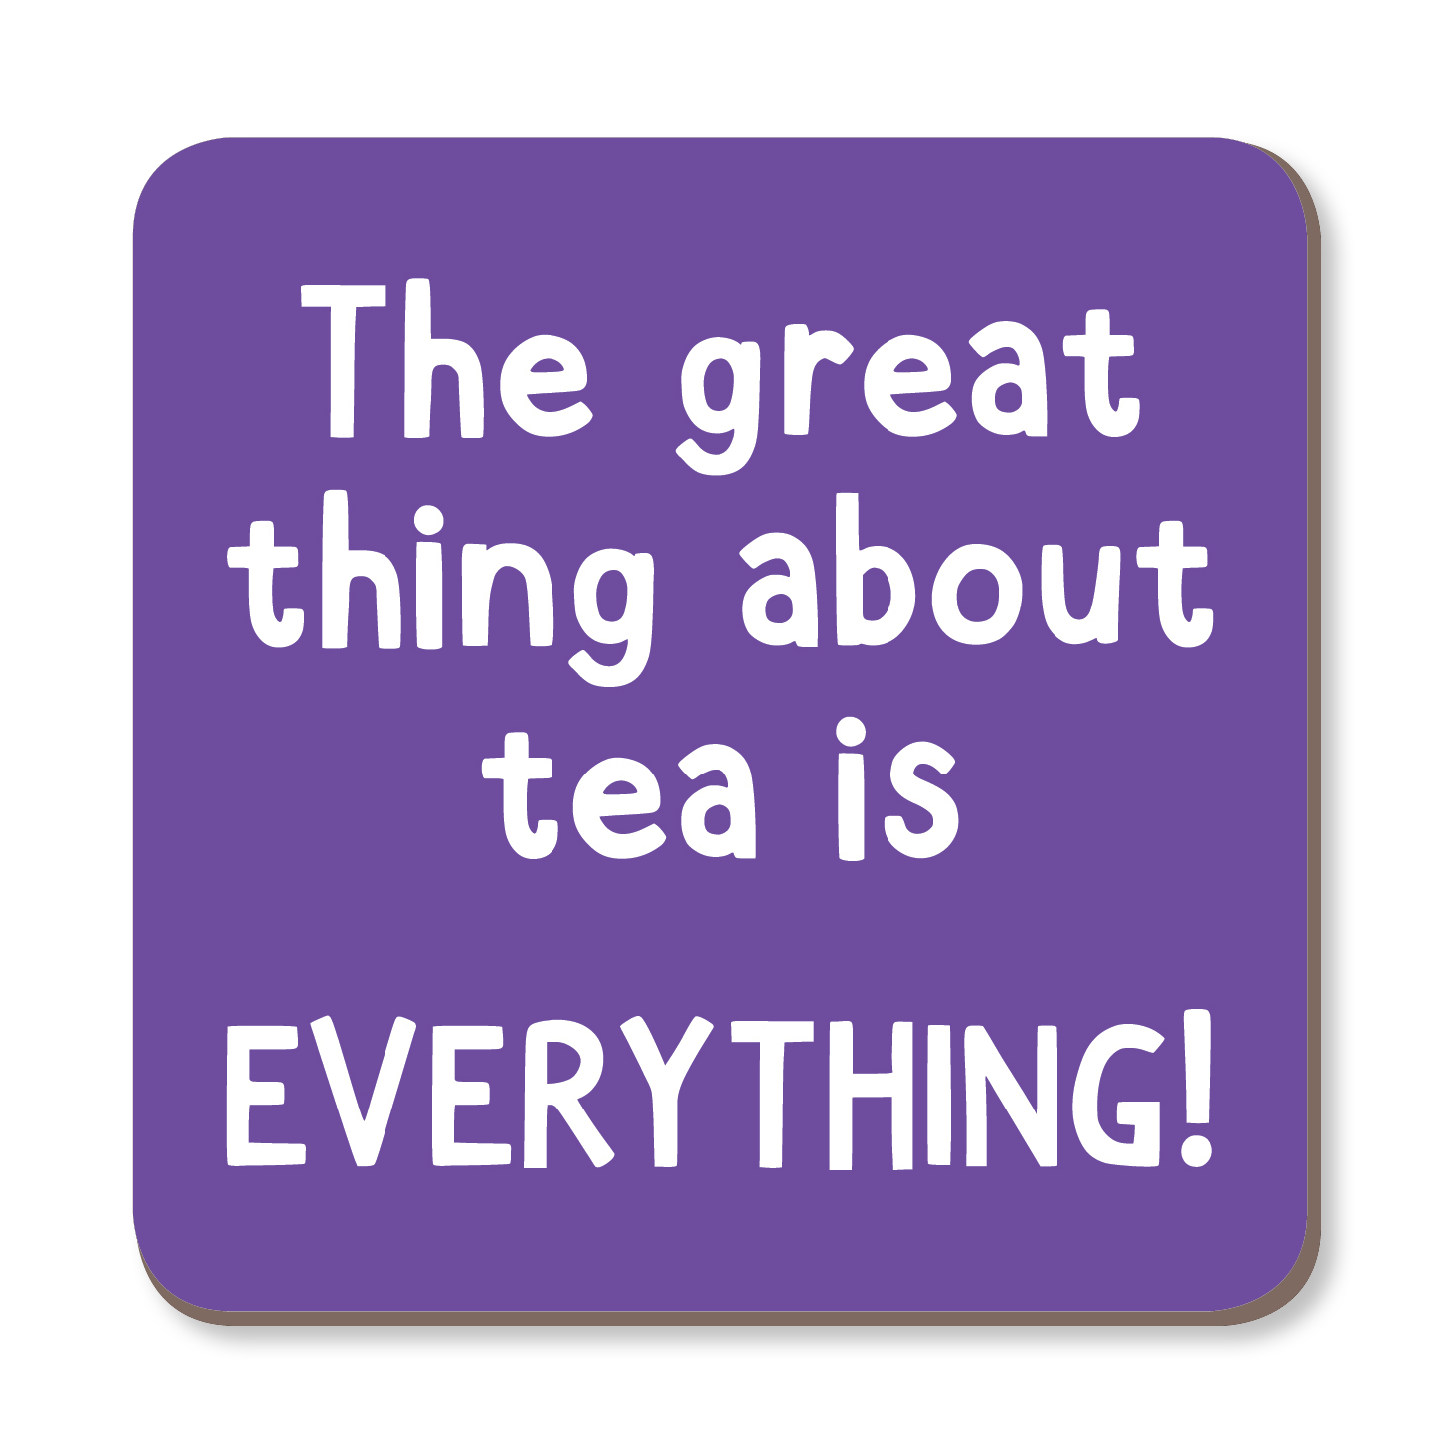 The Great Thing About Tea Is EVERYTHING Coaster by The Spork Collection - Whale and Bird